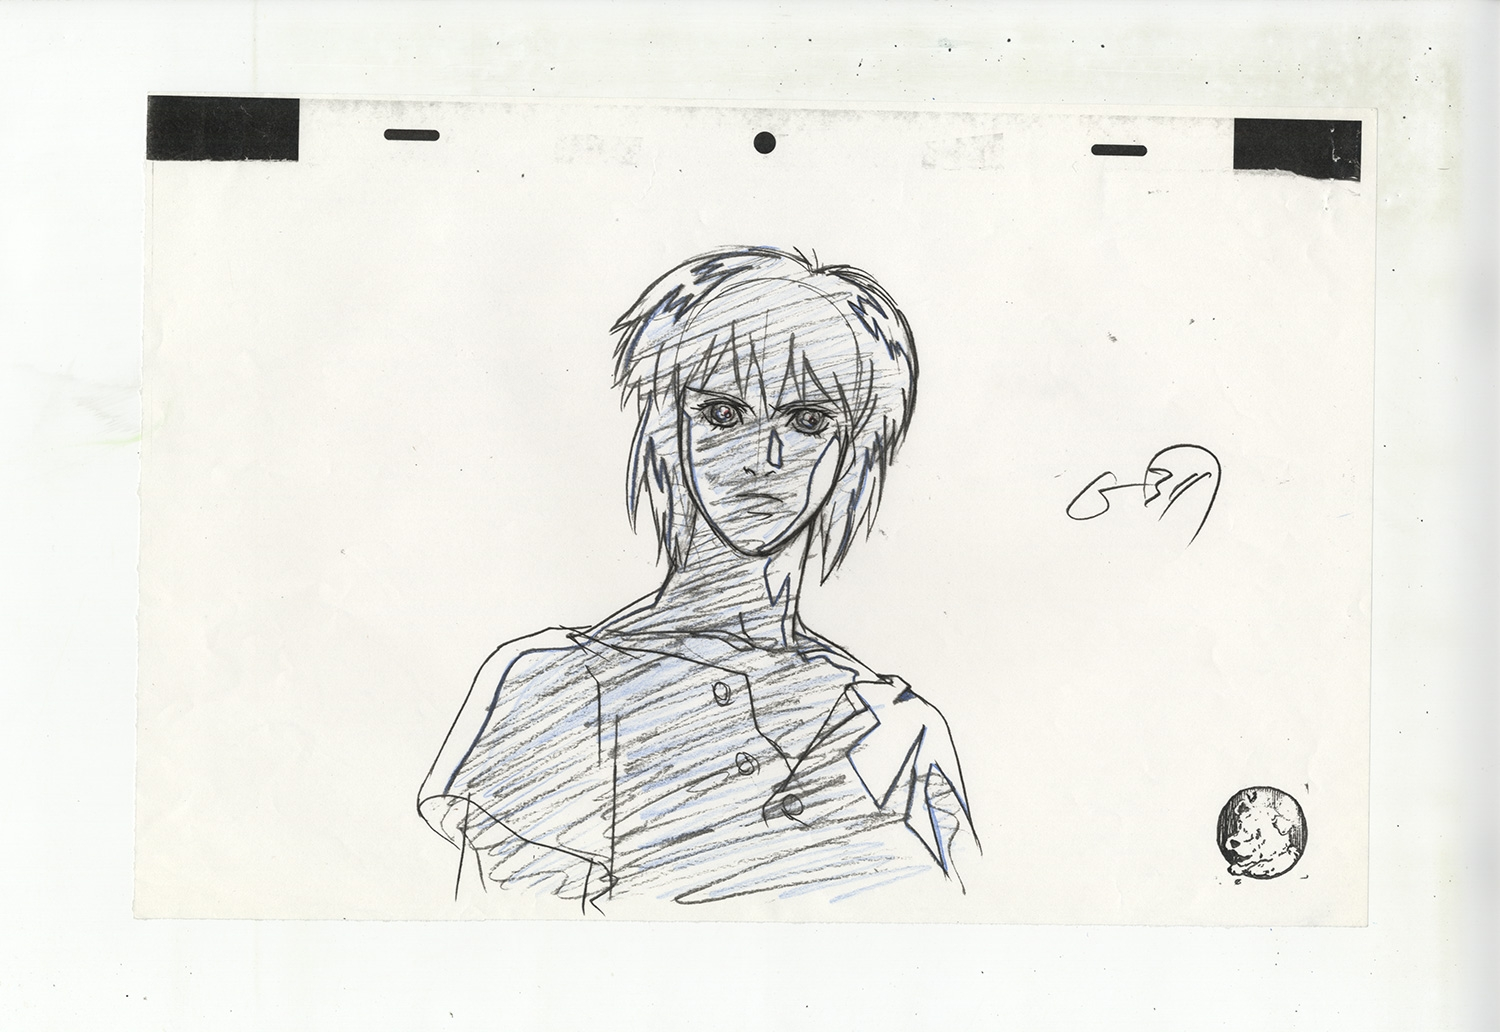 Concept Art From Original Ghost In The Shell Anime Innocence Patlabor Digital Arts